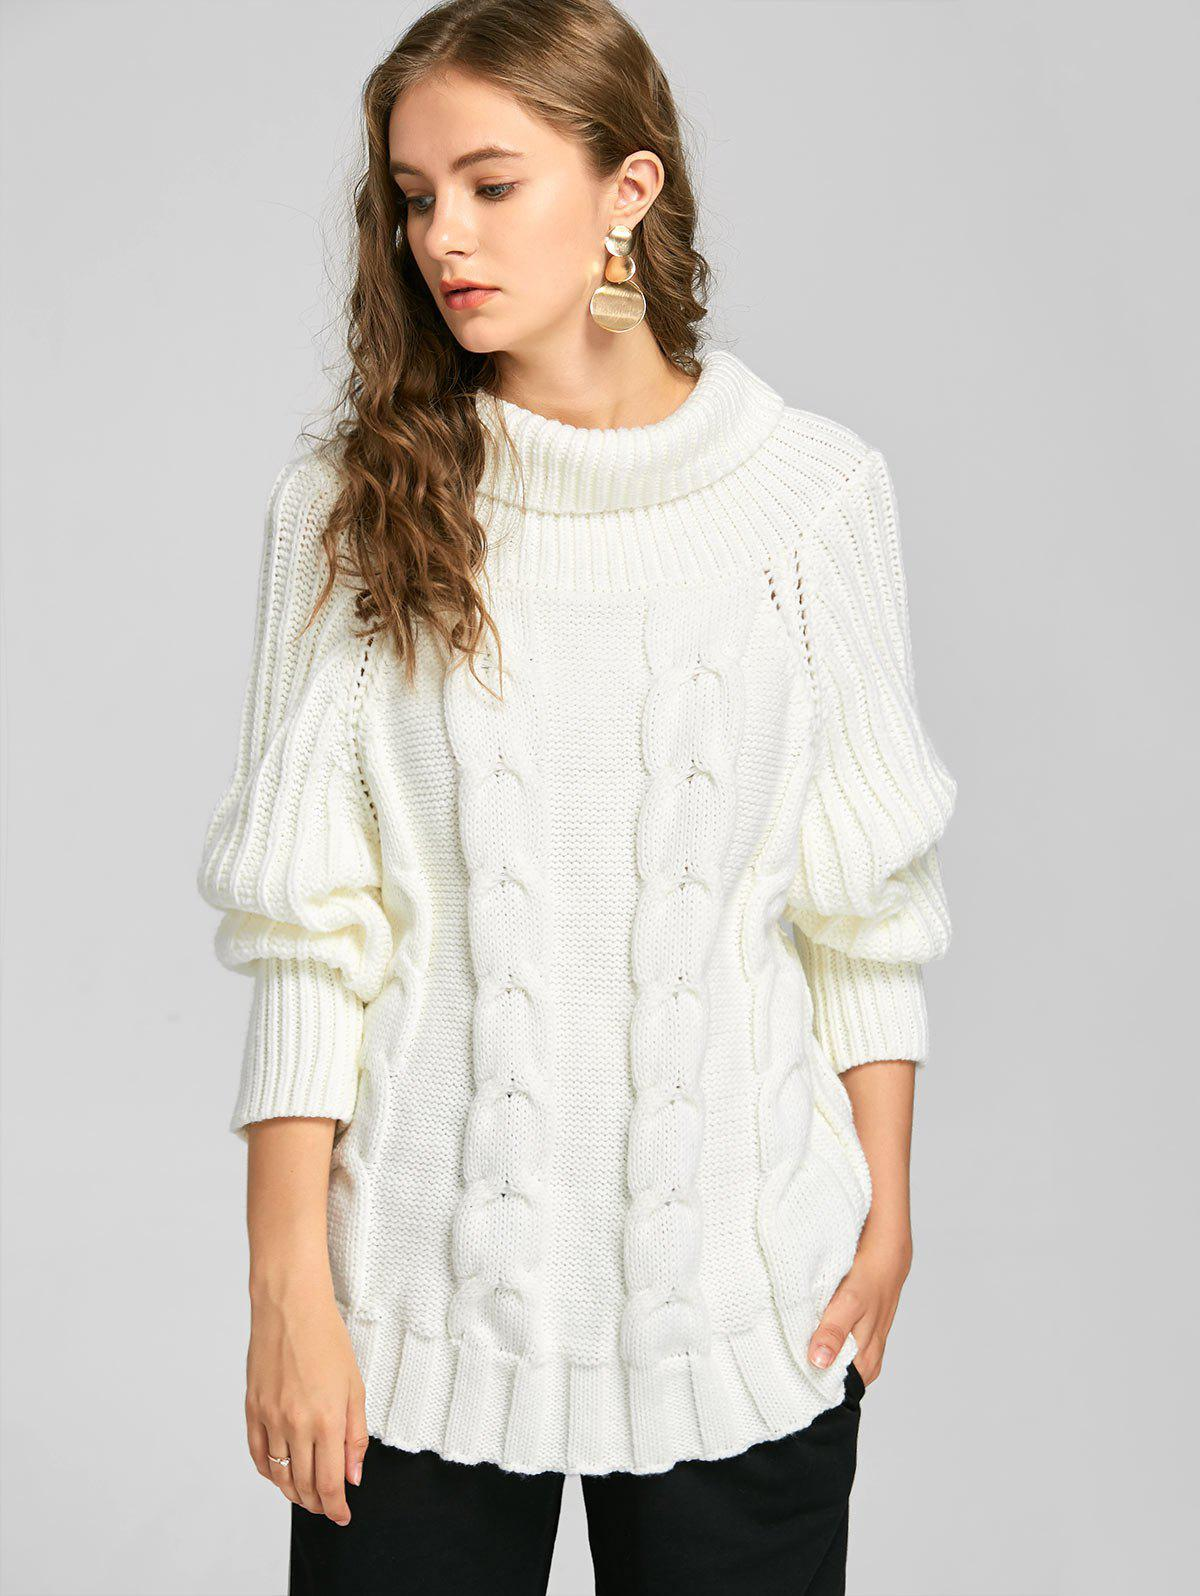 Turtleneck Cable Knit Chunky SweaterWOMEN<br><br>Size: ONE SIZE; Color: WHITE; Type: Pullovers; Material: Acrylic,Cotton,Polyester; Sleeve Length: Full; Collar: Turtleneck; Style: Fashion; Pattern Type: Solid; Weight: 0.7000kg; Package Contents: 1 x Sweater;